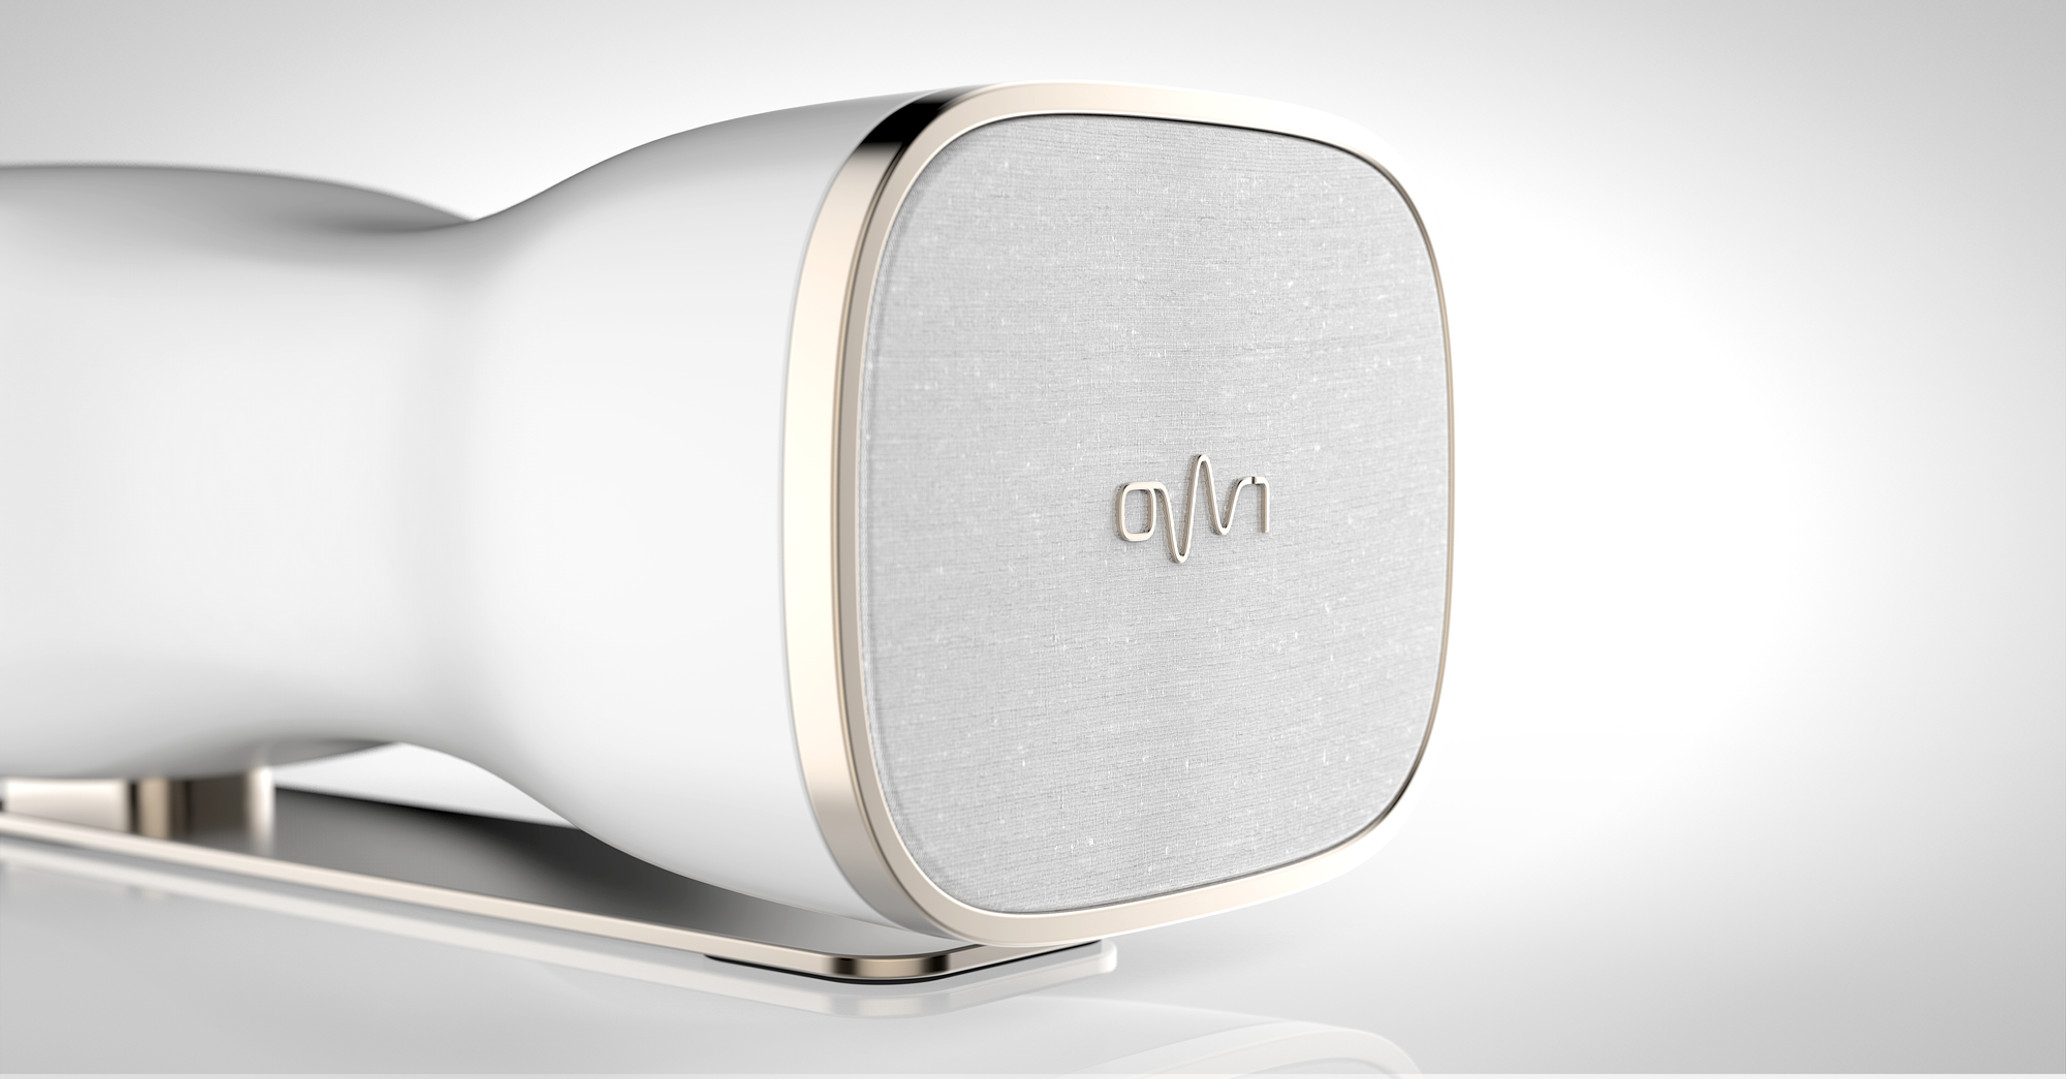 0W1 Portable Audio Speakers